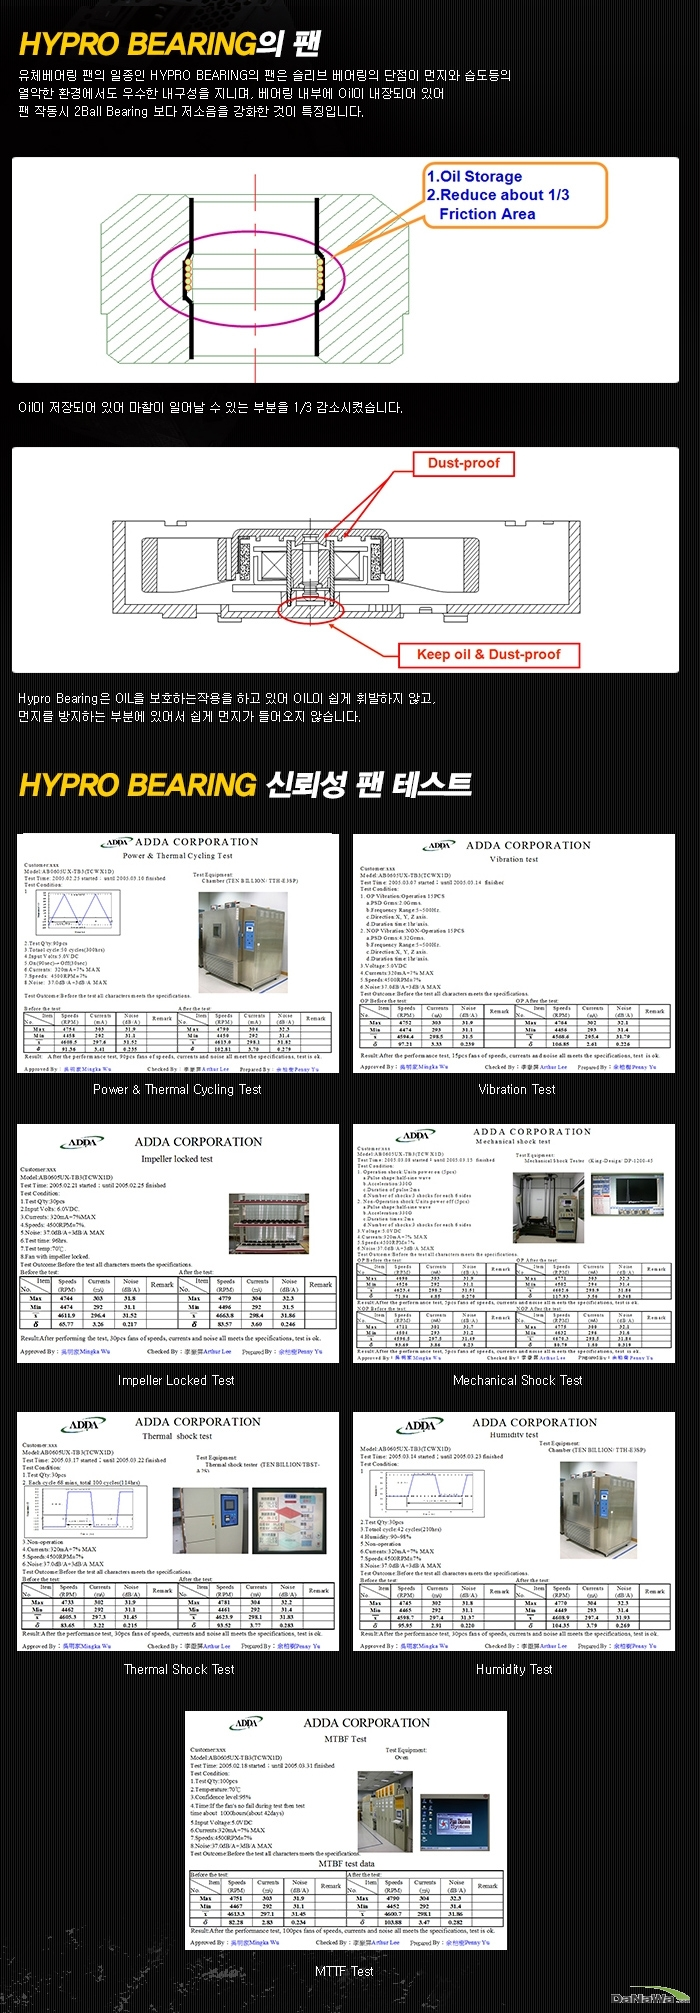 POWEREX BLACK HAWK 650W Hypro bearing의 팬